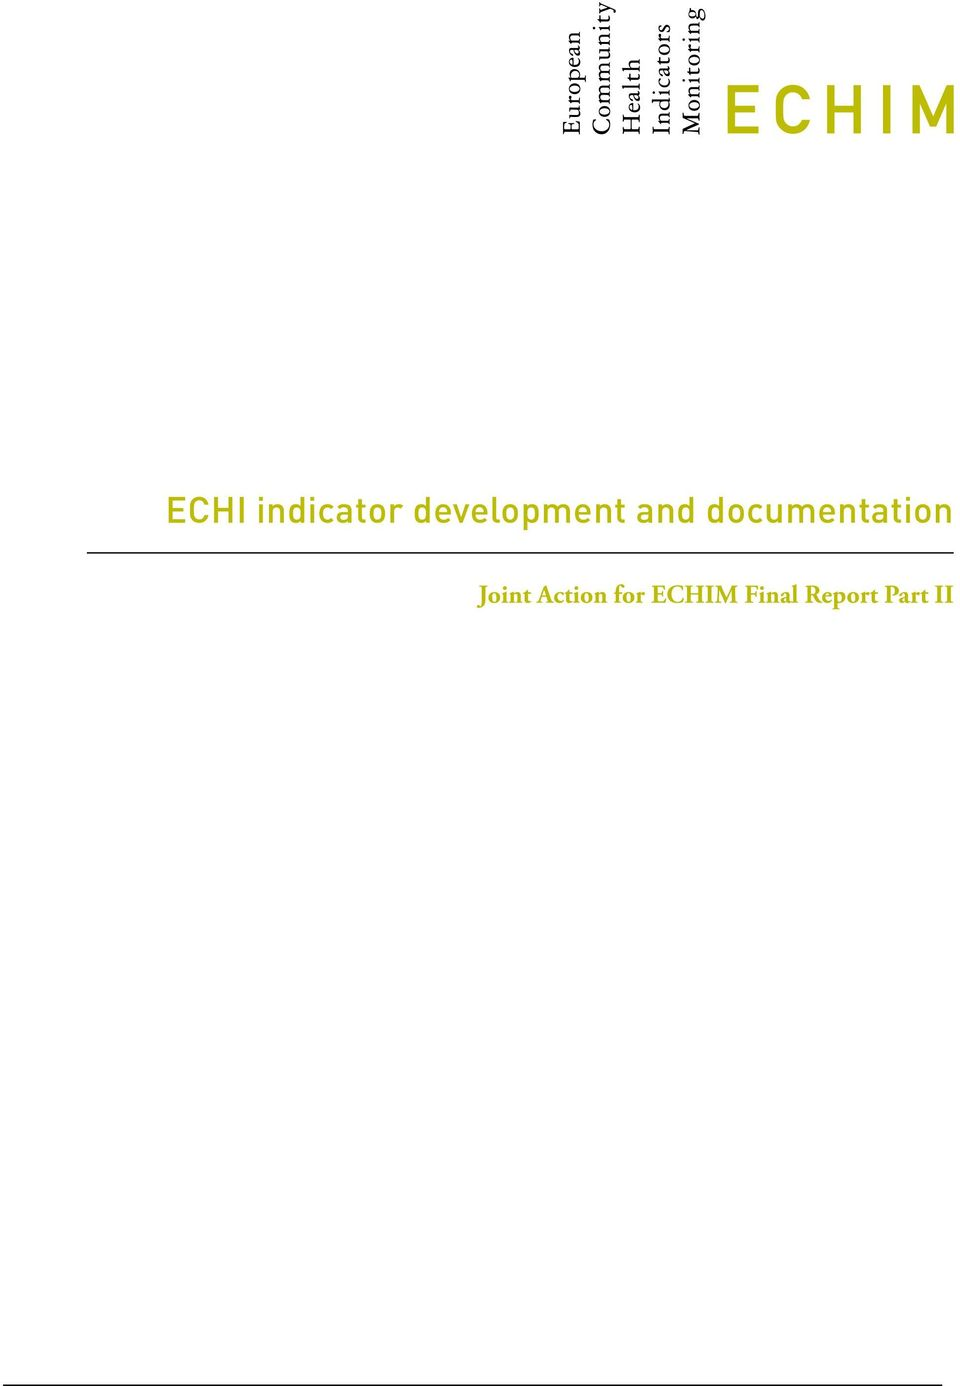 documentation Joint